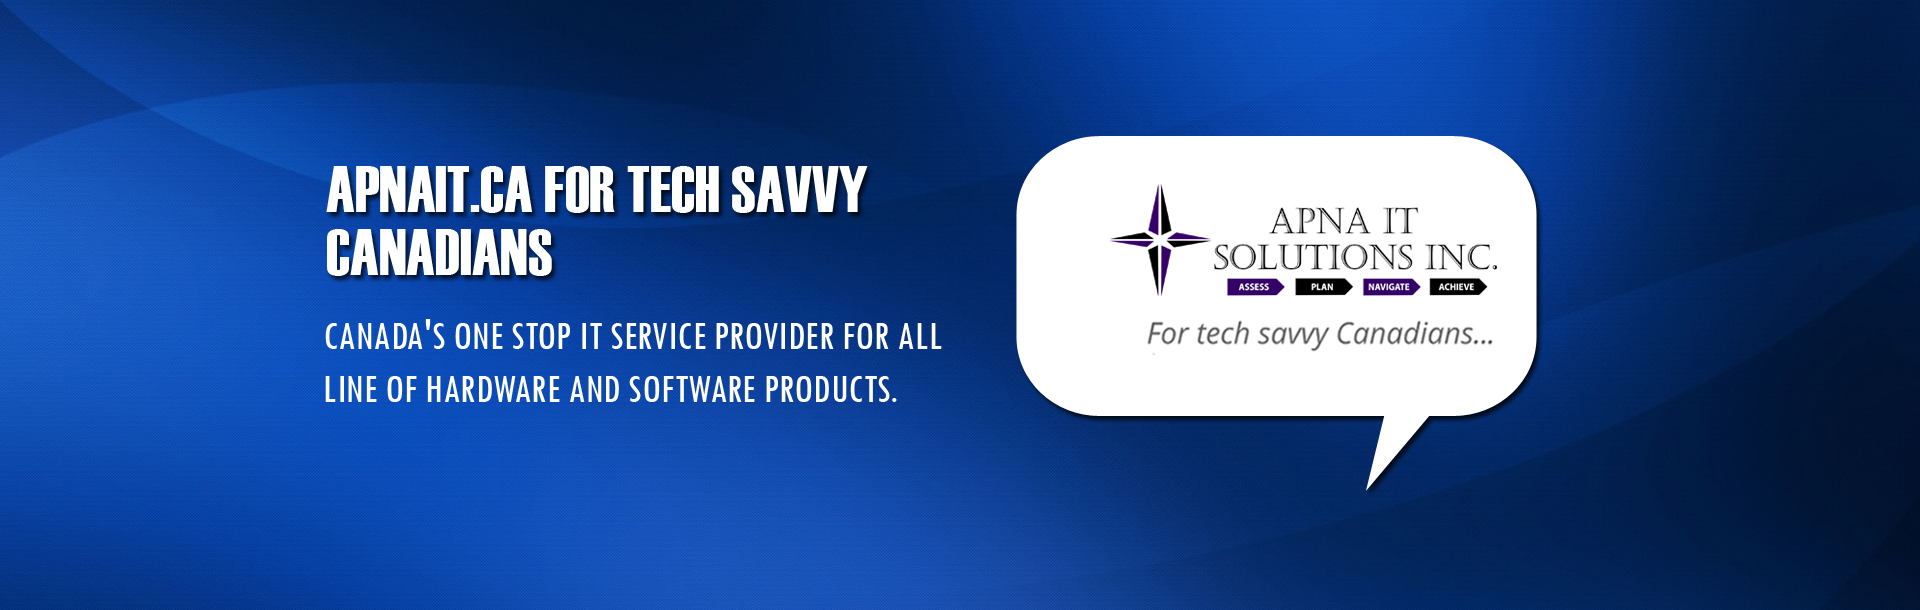 APNAIT.CA For Tech Saavy Canadians